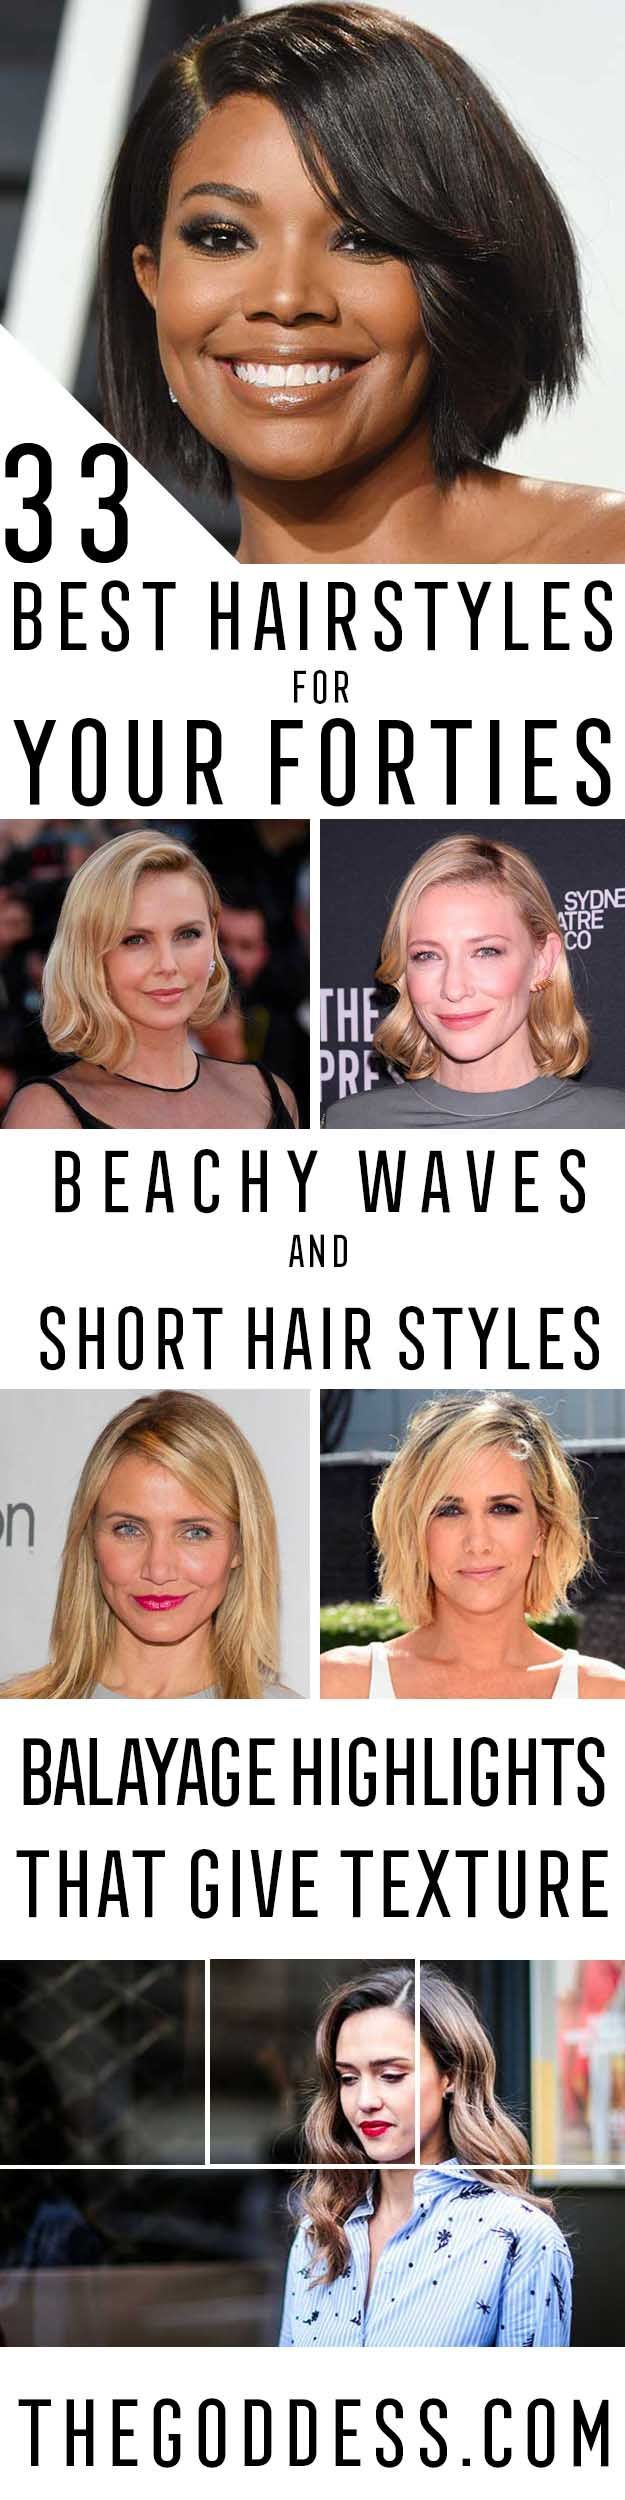 Best Hairstyles For Your 40s - Most Flattering Haircuts And Hairstyles For Women...